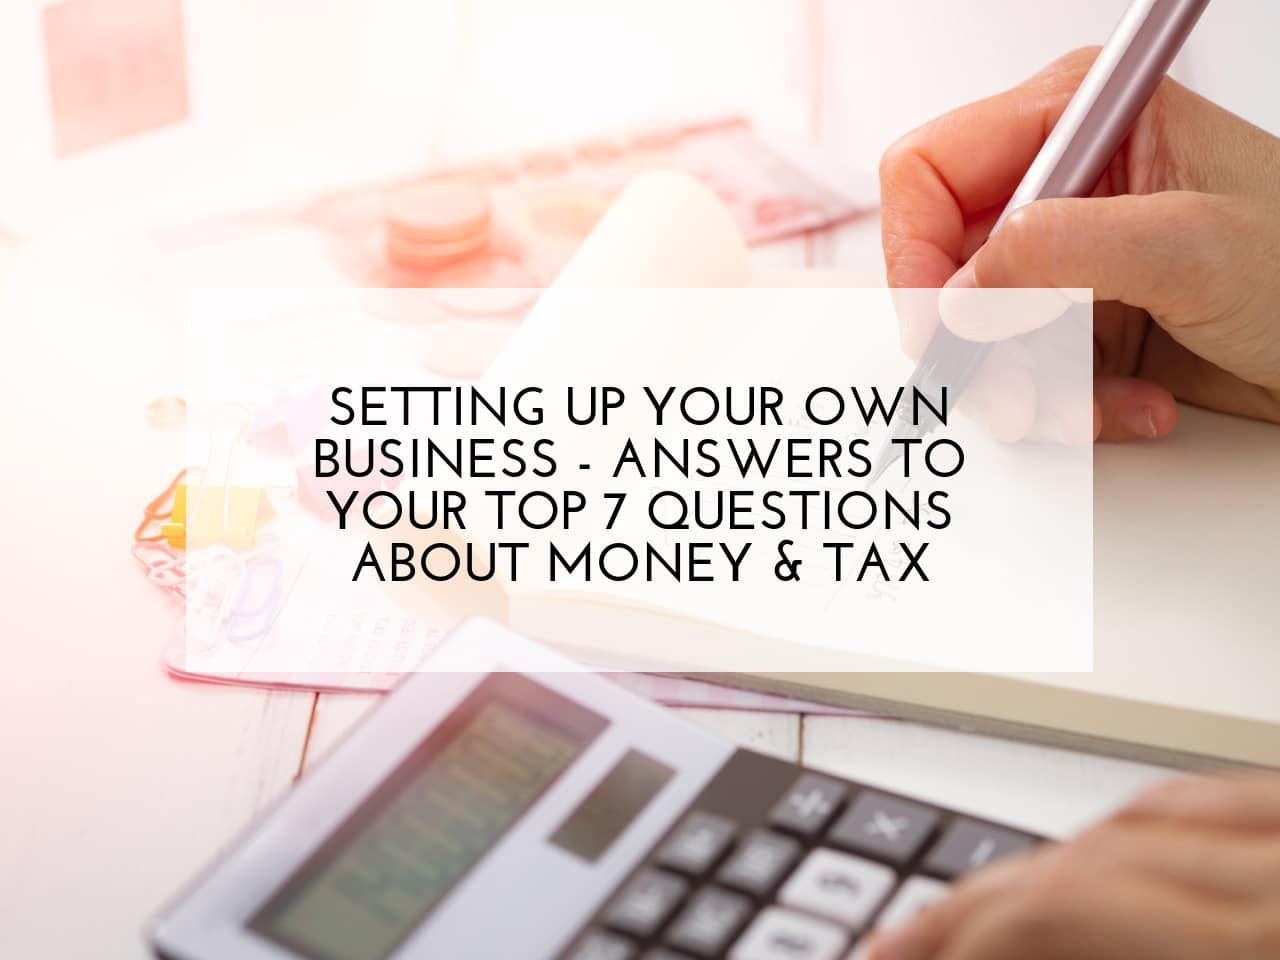 Setting up your own business - answers to your top 7 questions about money and tax